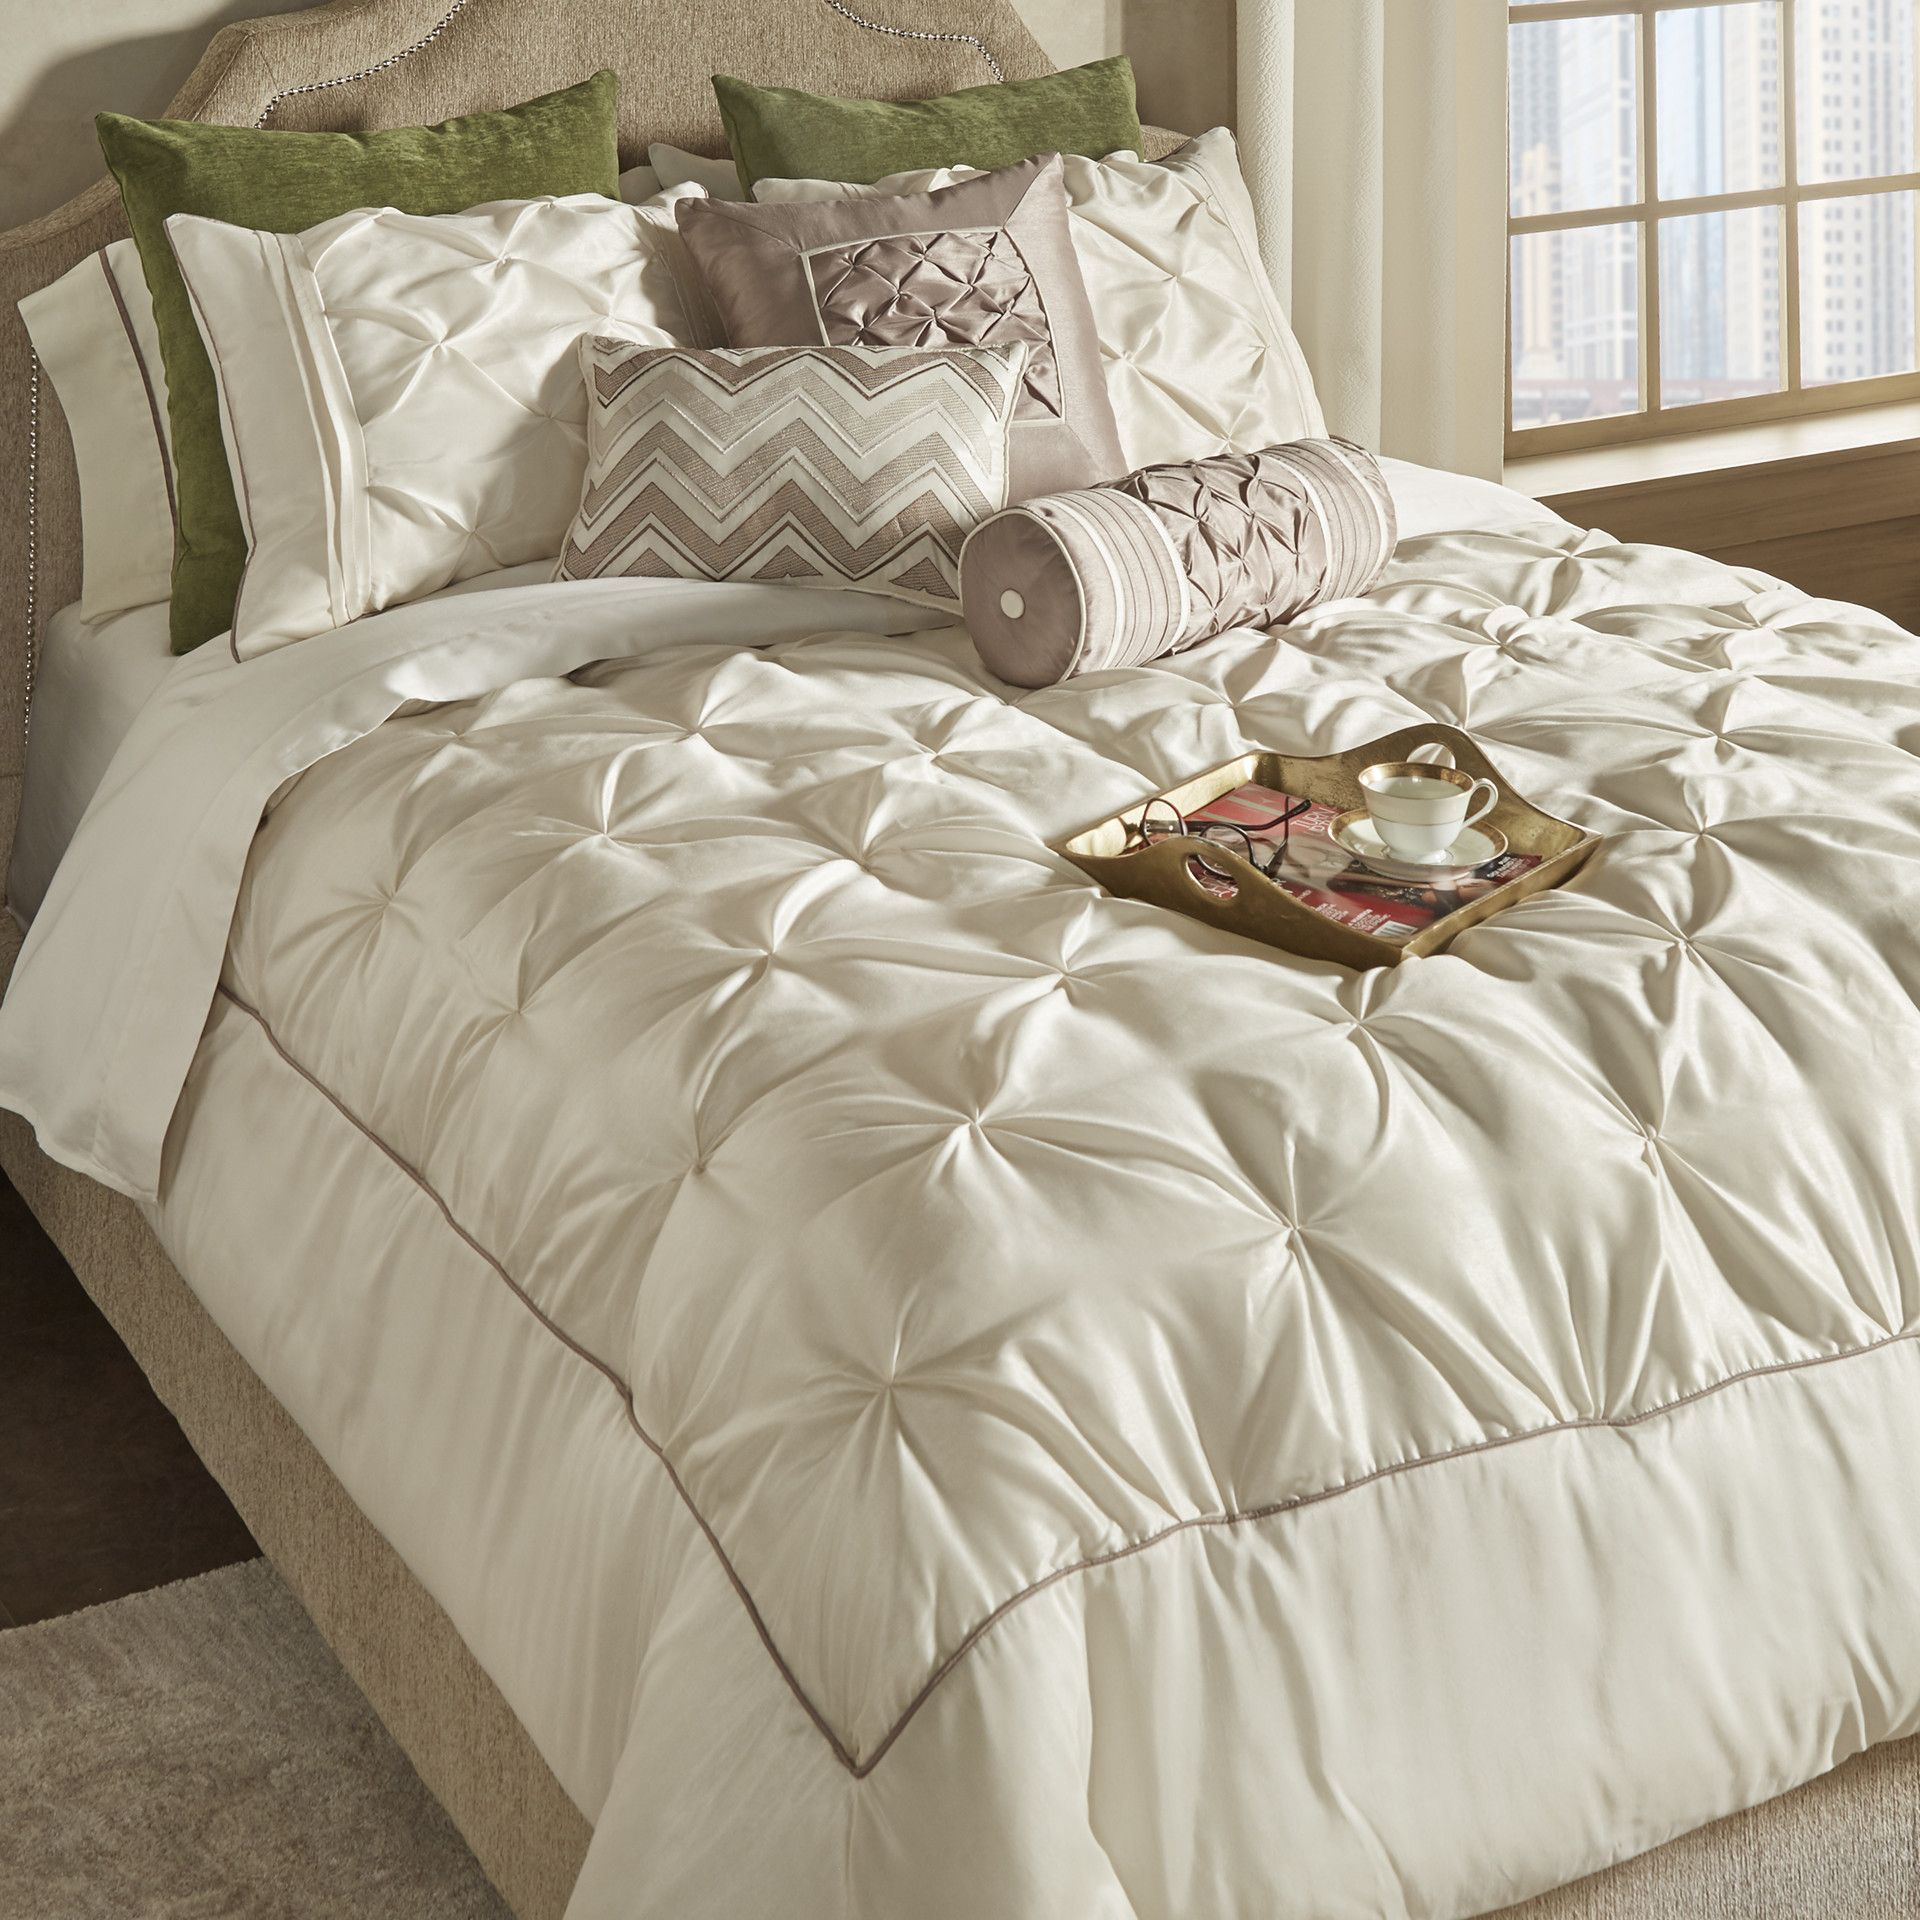 Wayfair basics wayfair basics 7 piece comforter set amp reviews - You Ll Love The Ashton Under Lyne 7 Piece Reversible Comforter Set At Wayfair Great Deals On All Bed Bath Products With Free Shipping On Most Stuff